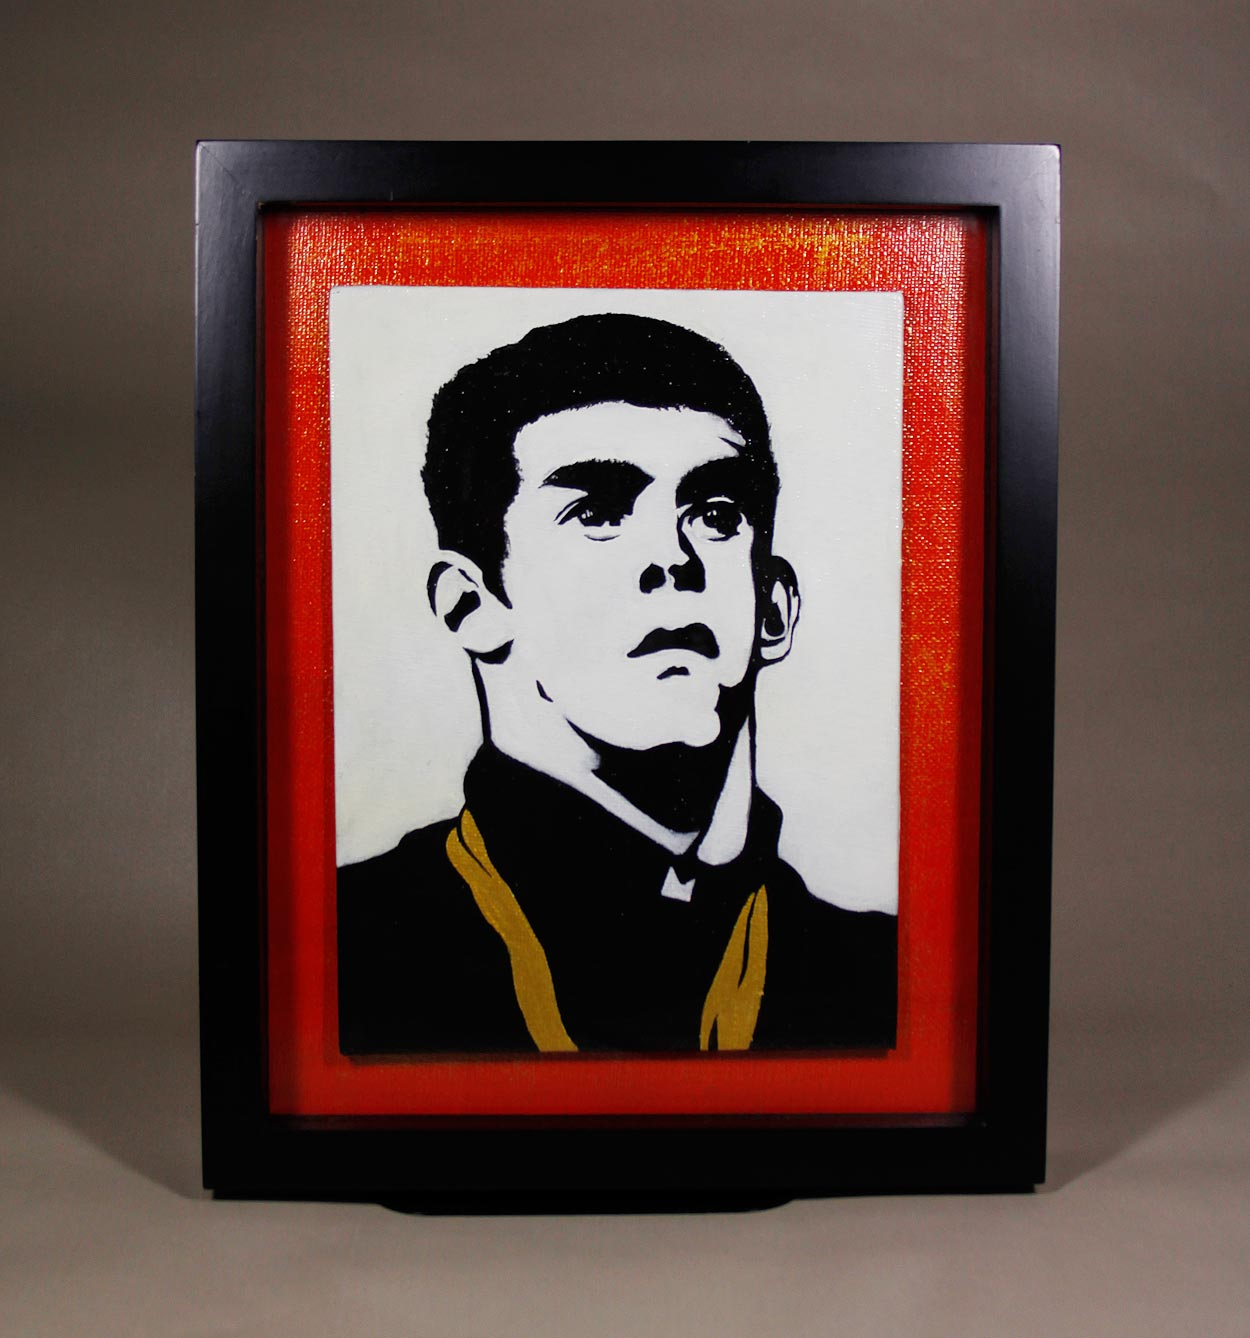 Red, black, and white graphic acrylic painting of Michael Phelps.